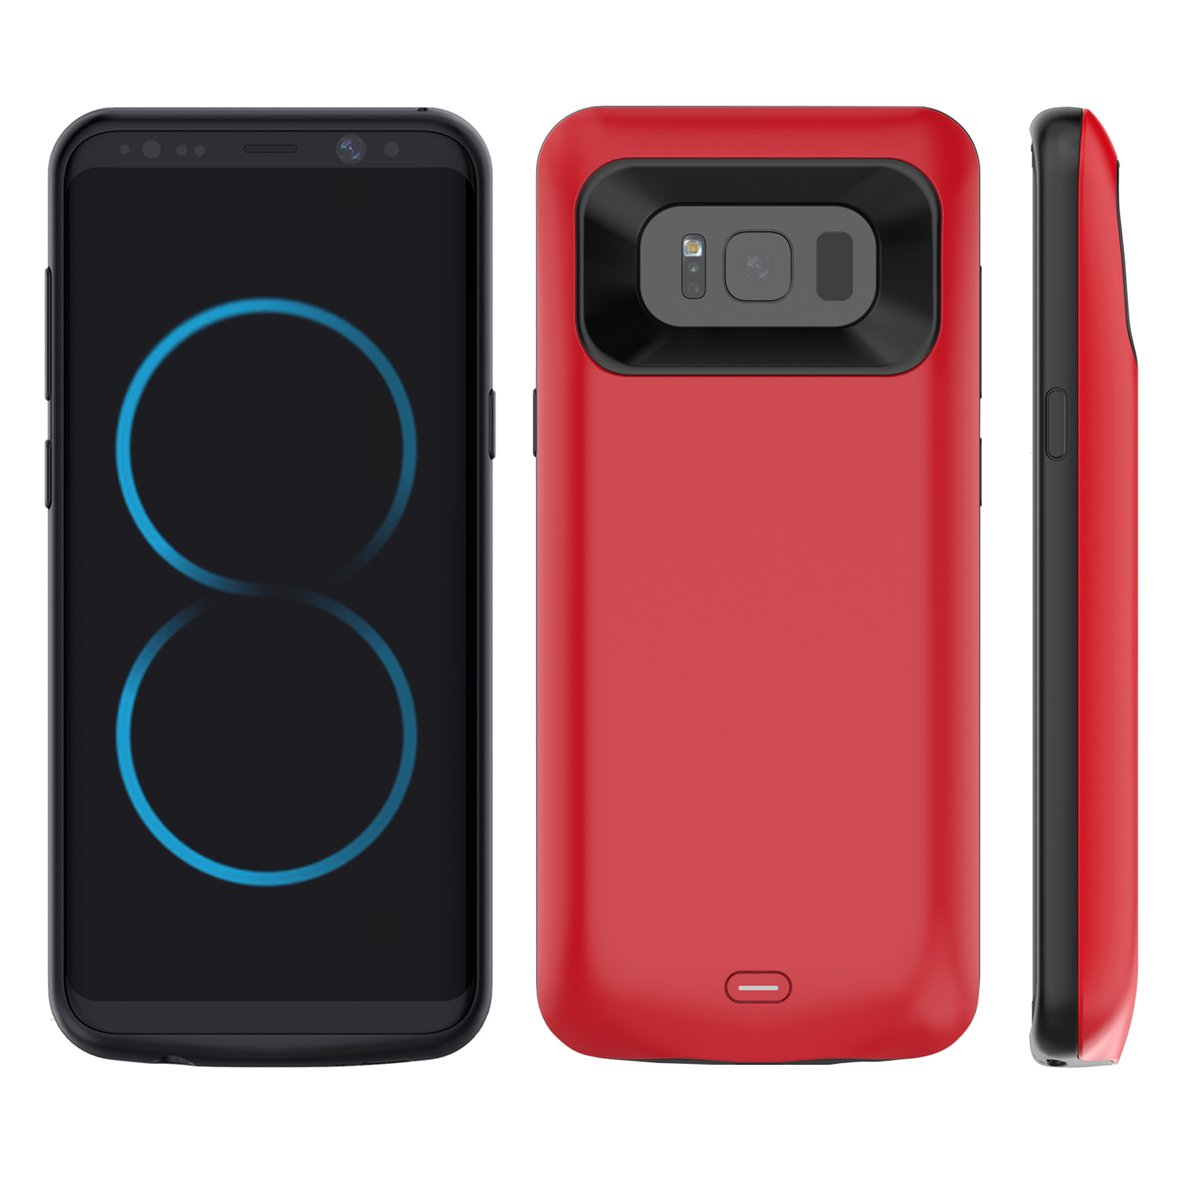 Scheam Samsung Galaxy Note 8 Battery Battery Case- Carry Case Protective Portable Rechargeable Charging Case for Samsung Galaxy Note 8 Battery Bank Power Pack -Red